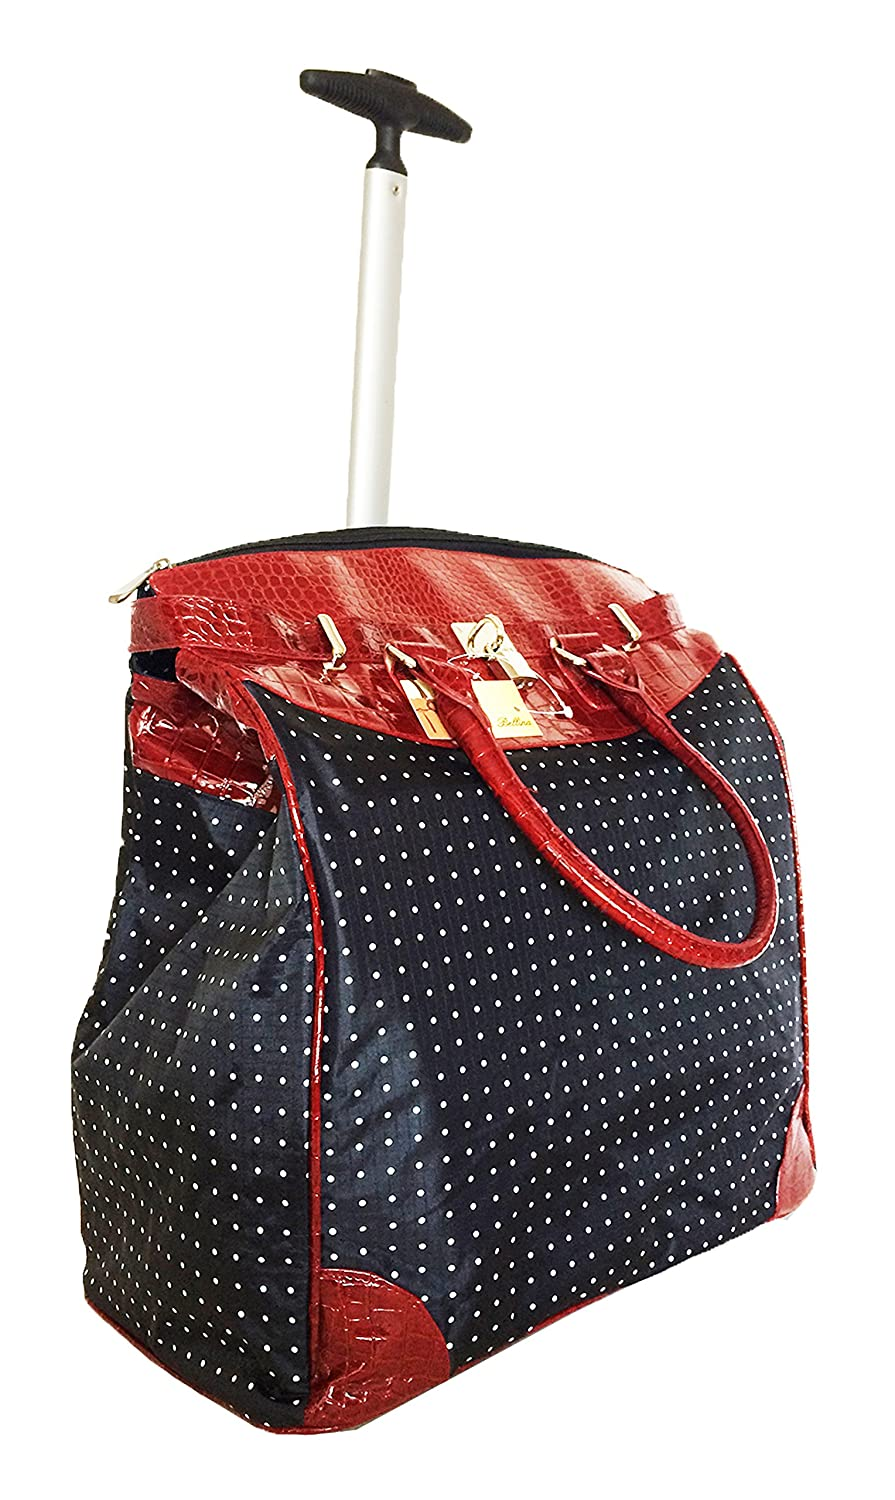 db01c9503e0b Polka Dot Rolling Travel Tote Foldable Carry-On